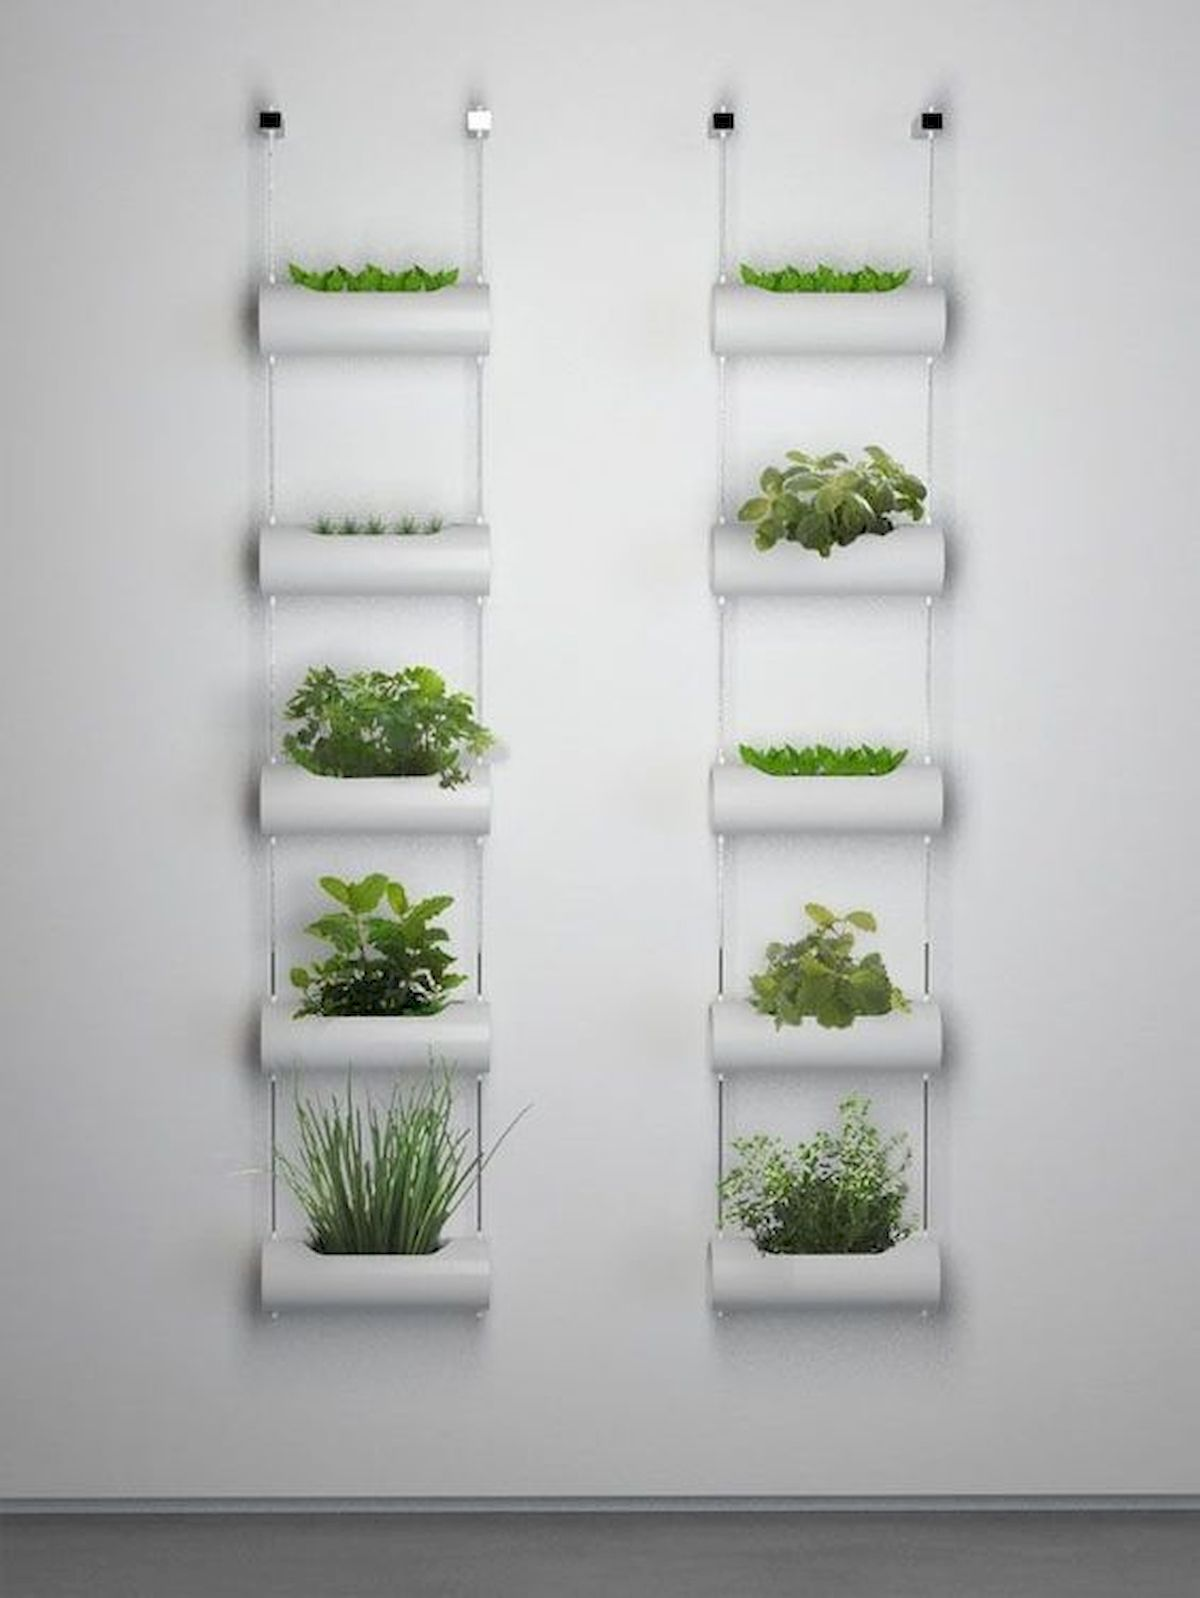 44 Fantastic Vertical Garden Ideas To Make Your Home Beautiful (14)